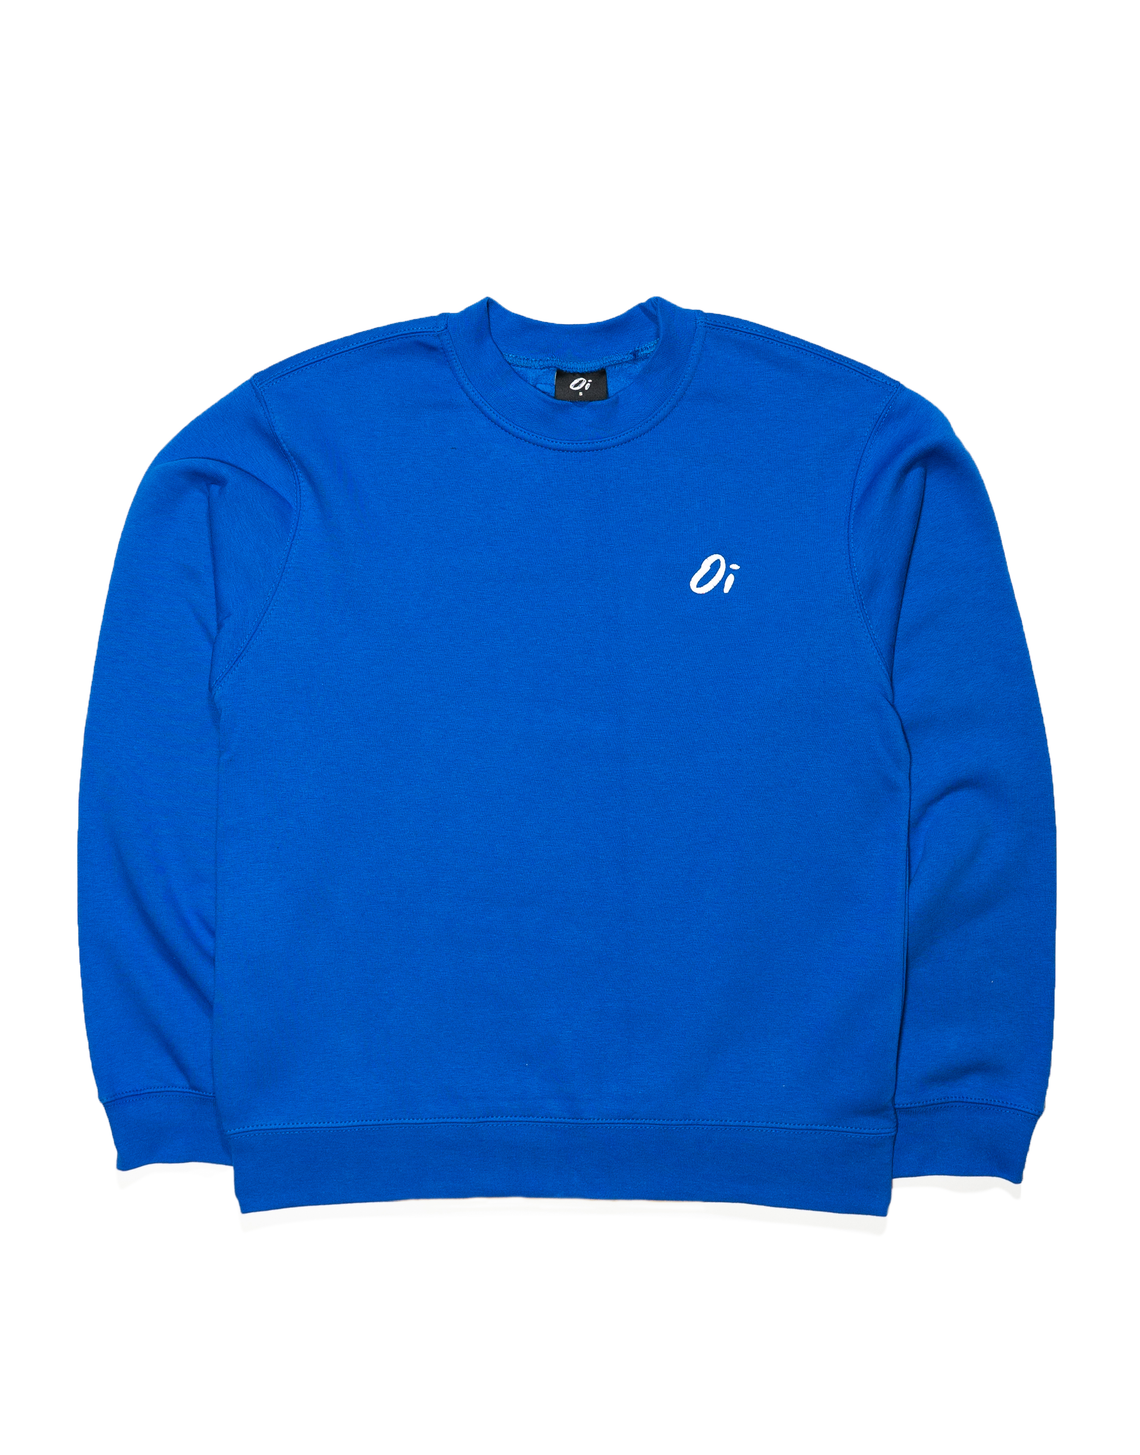 Blue Oi Sweater - OutsideIn